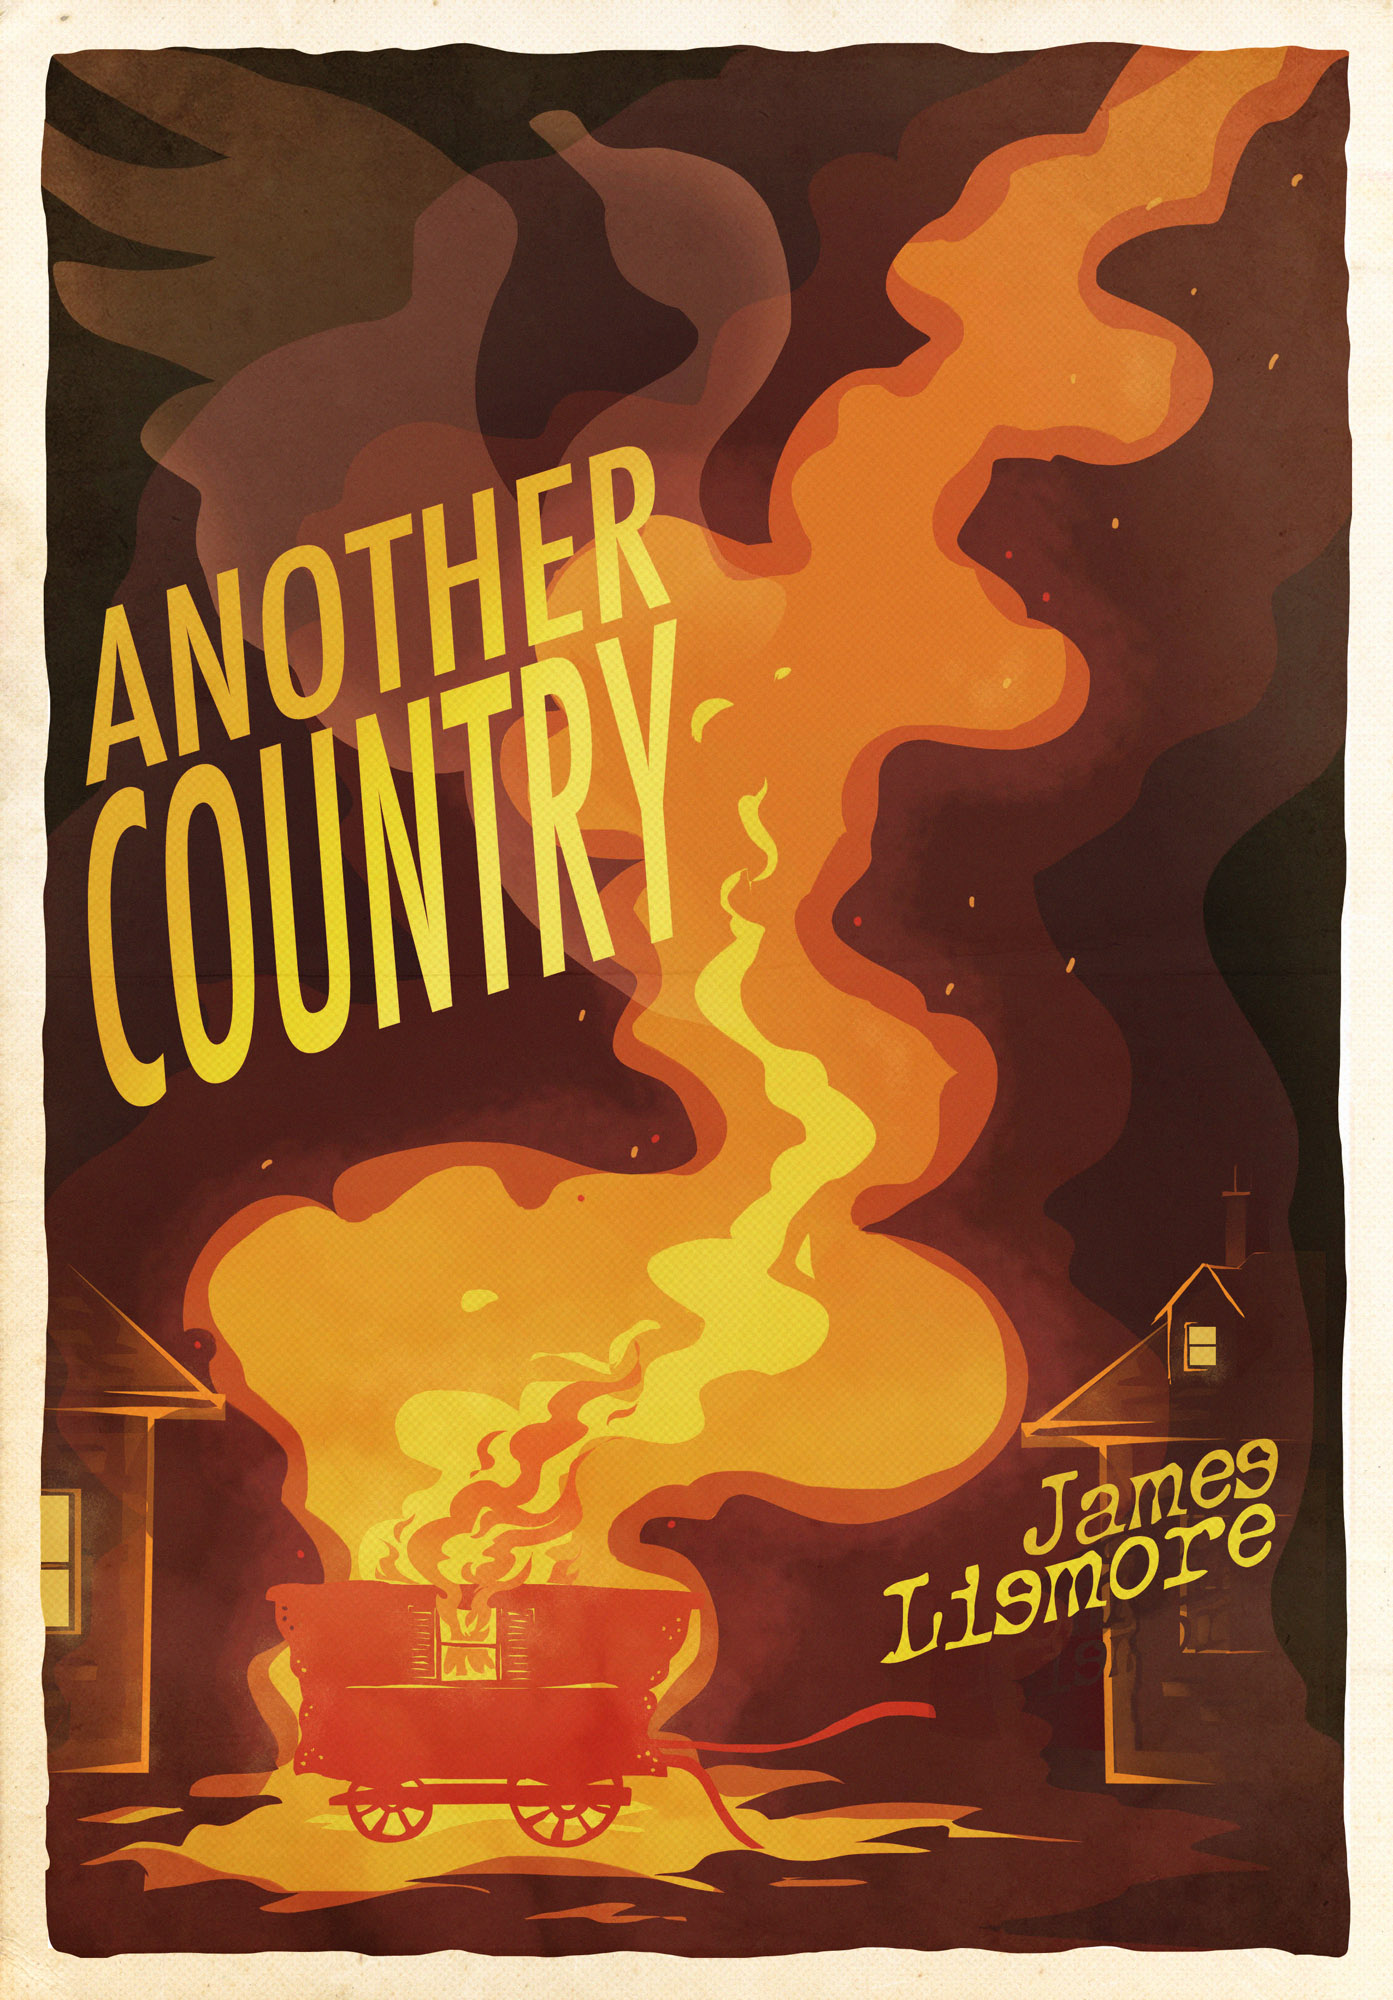 Country Cookbook Cover : Another country book cover by jordan collver at coroflot